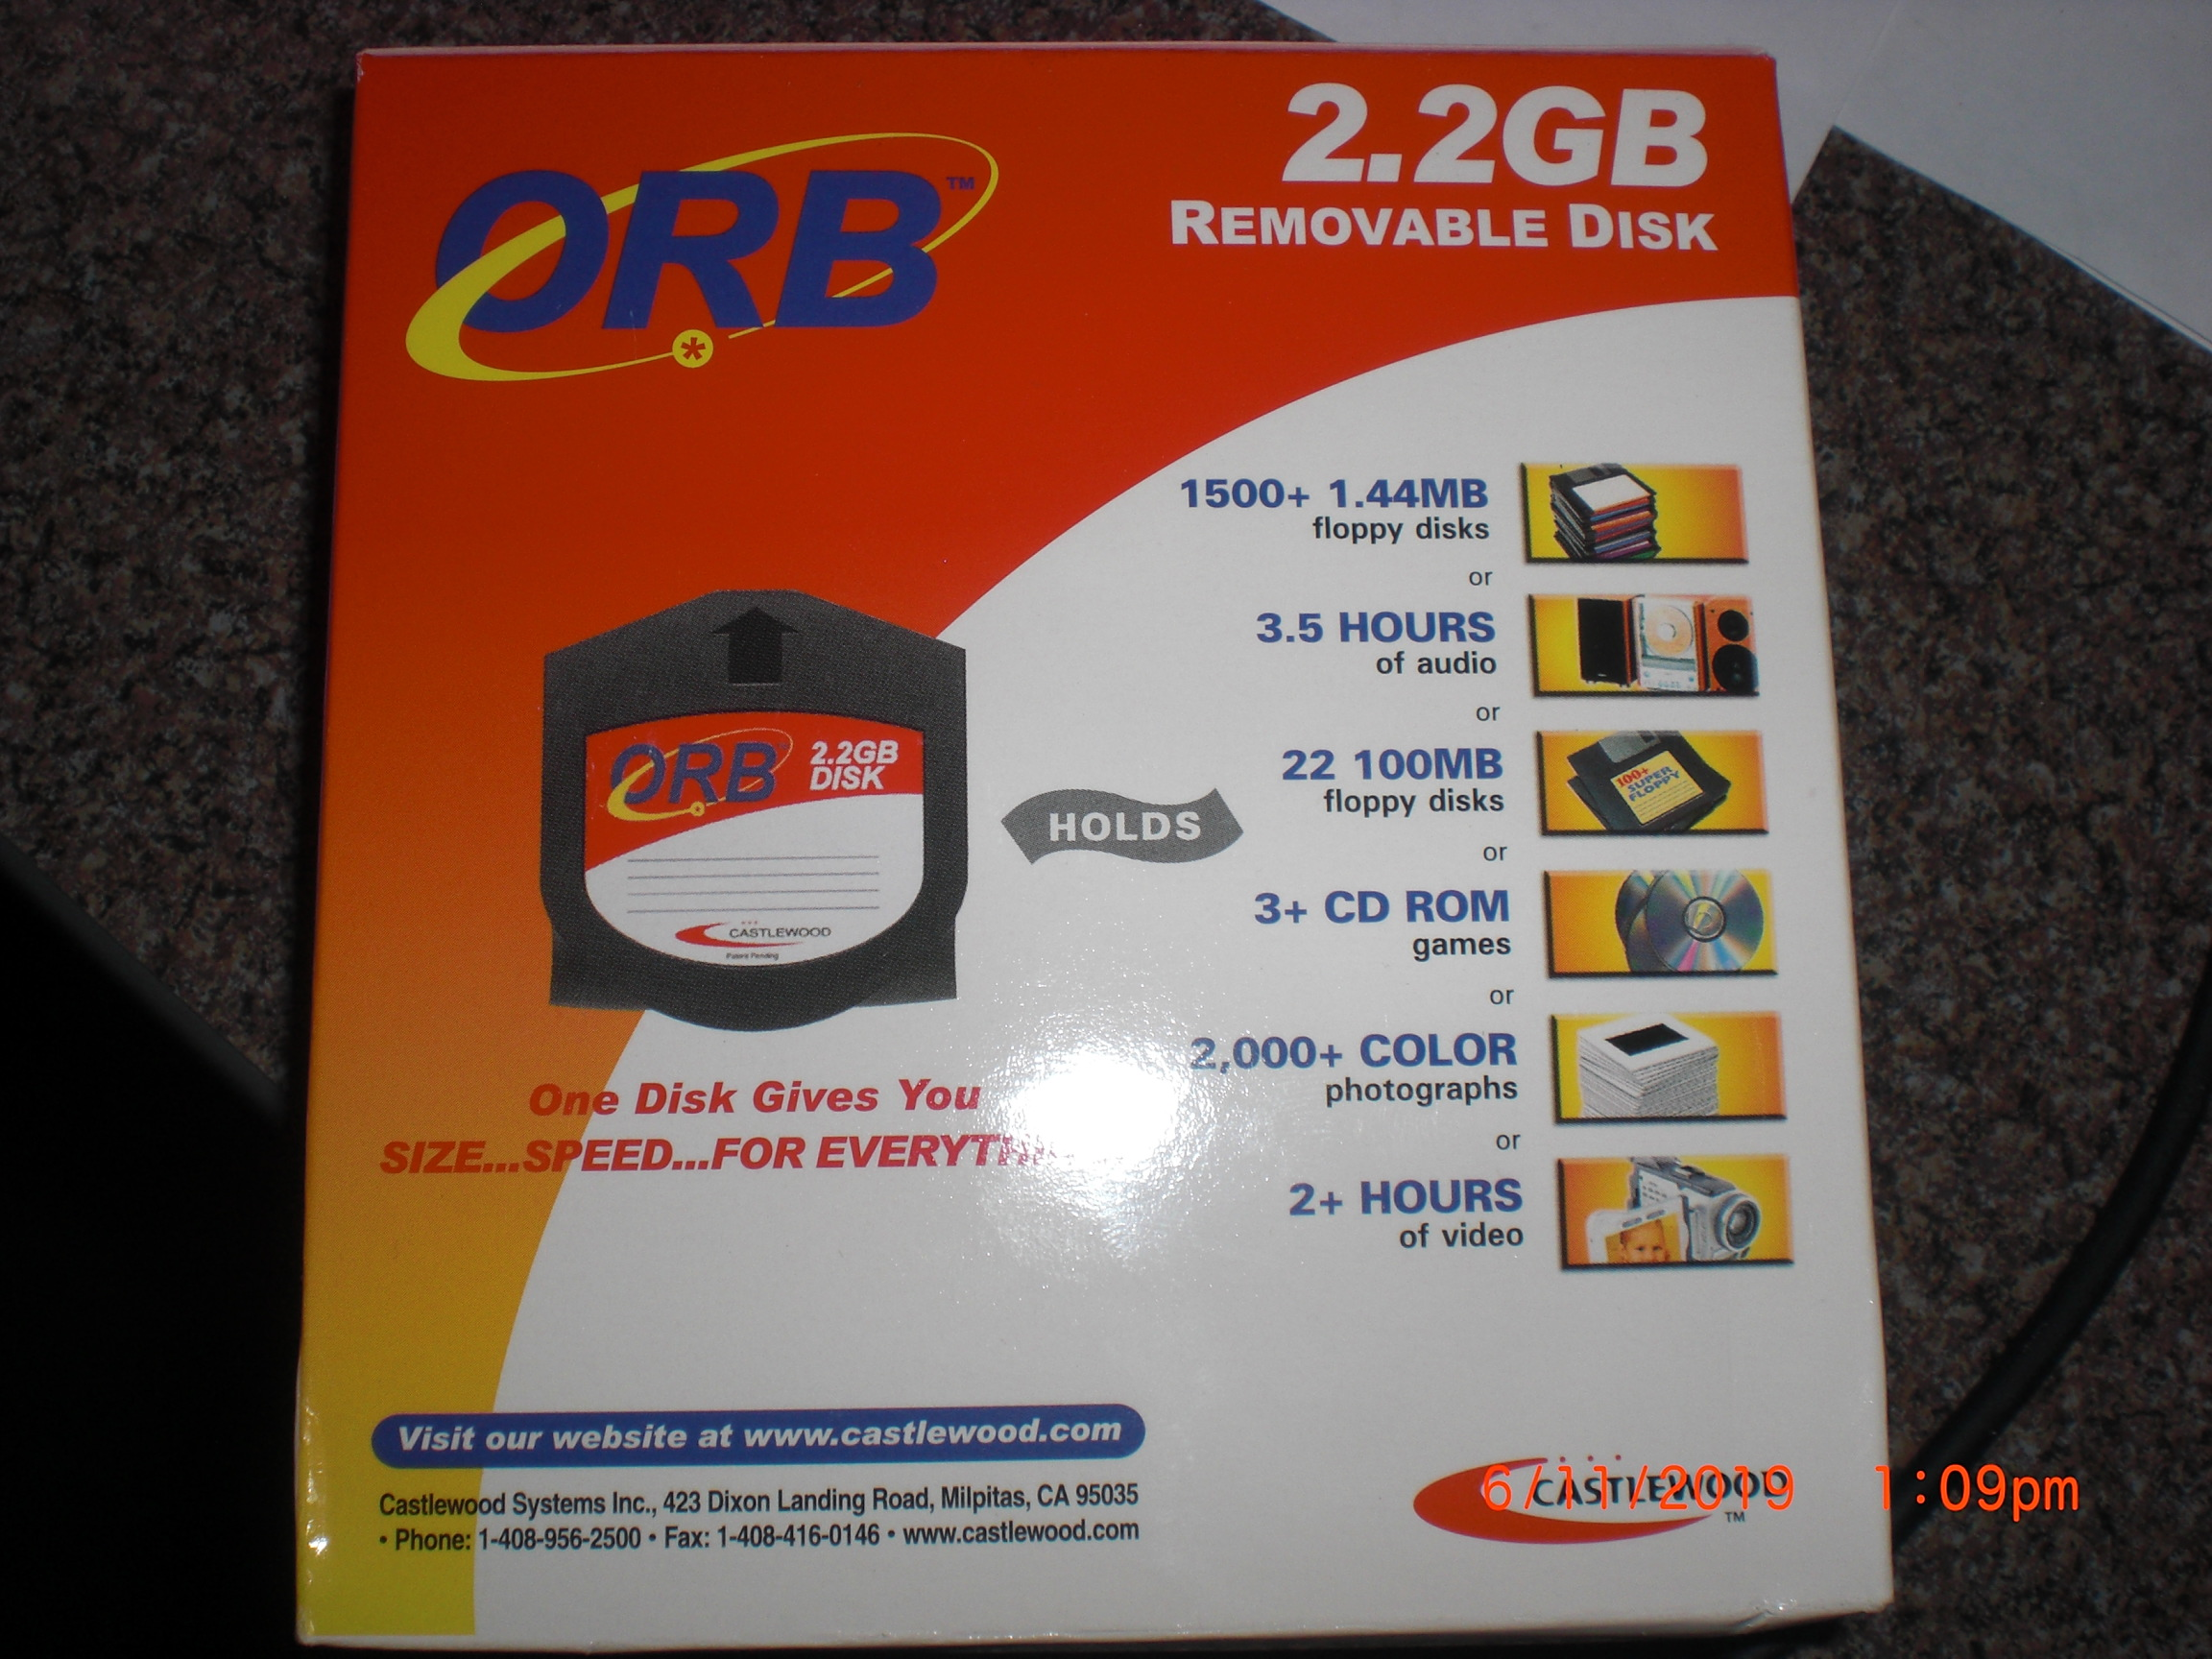 Computer Accessory Castlewood orb2.2 ORB 2,2GB removable Disk